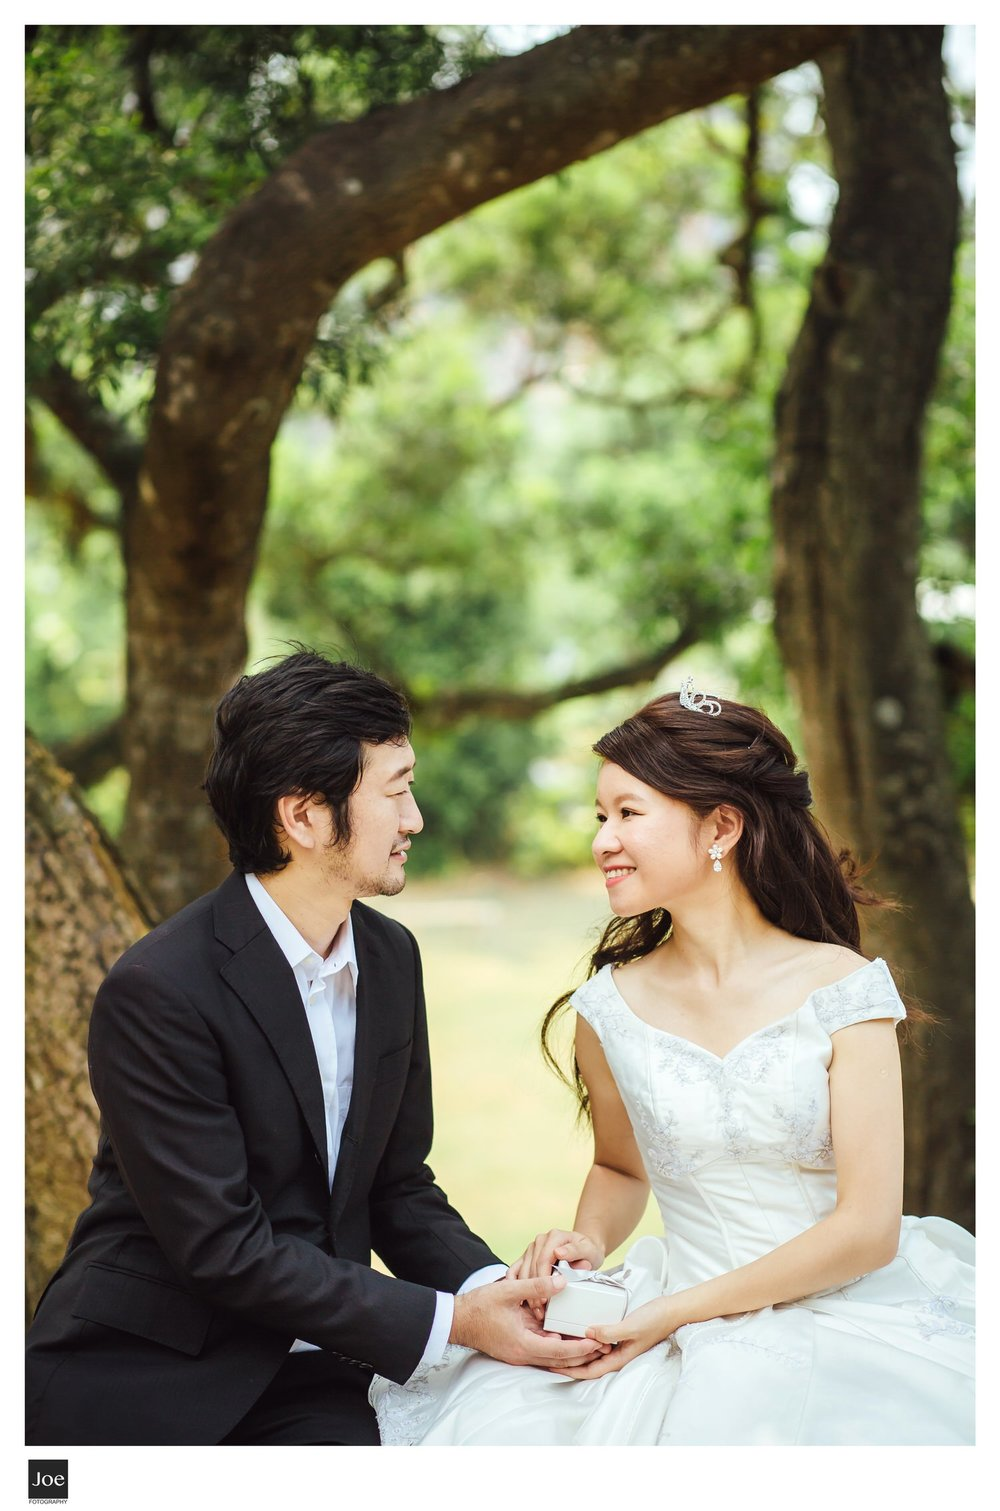 joe-fotography-engagement-photo-takeshi-tingting-15.jpg